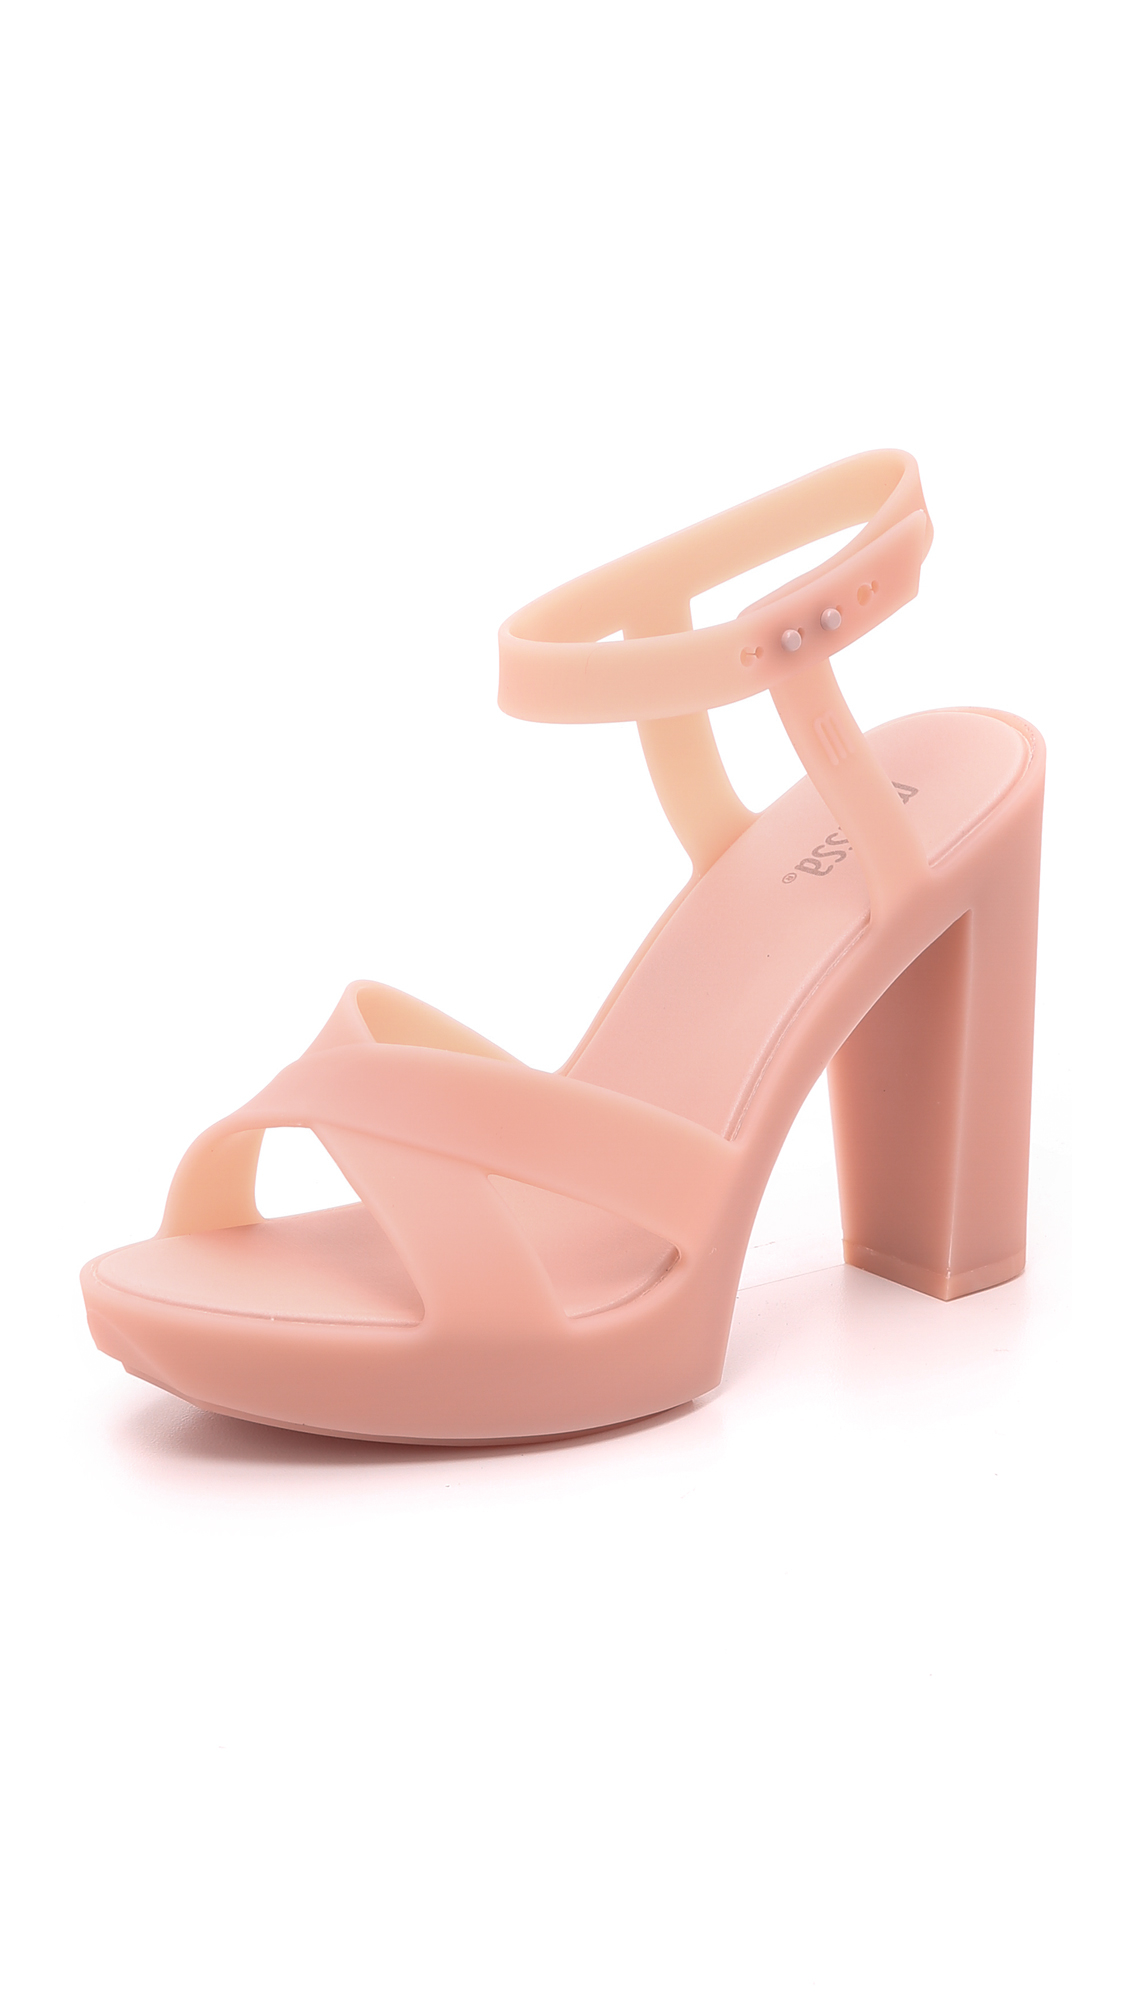 d260cac19d0 Lyst - Melissa Classic Lady Sandals in Pink